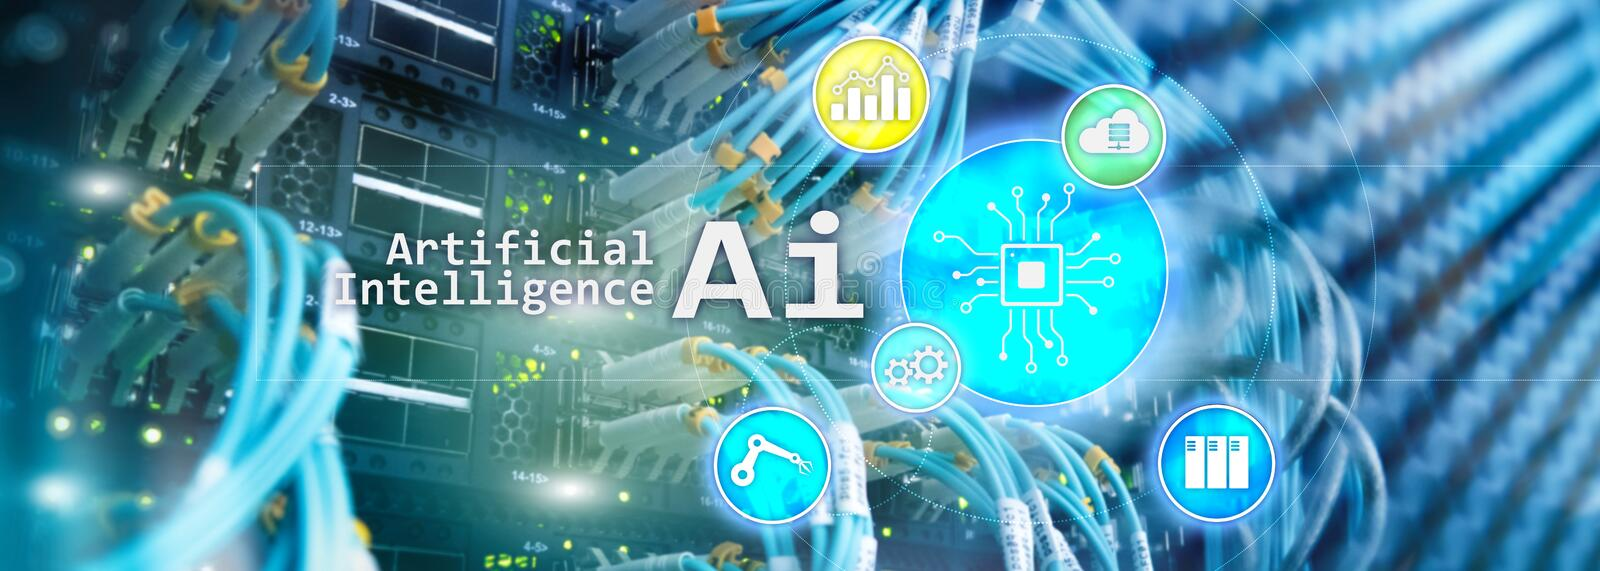 AI, intelligence artificielle, automation et concept moderne de technologie de l'information sur l'écran virtuel images stock